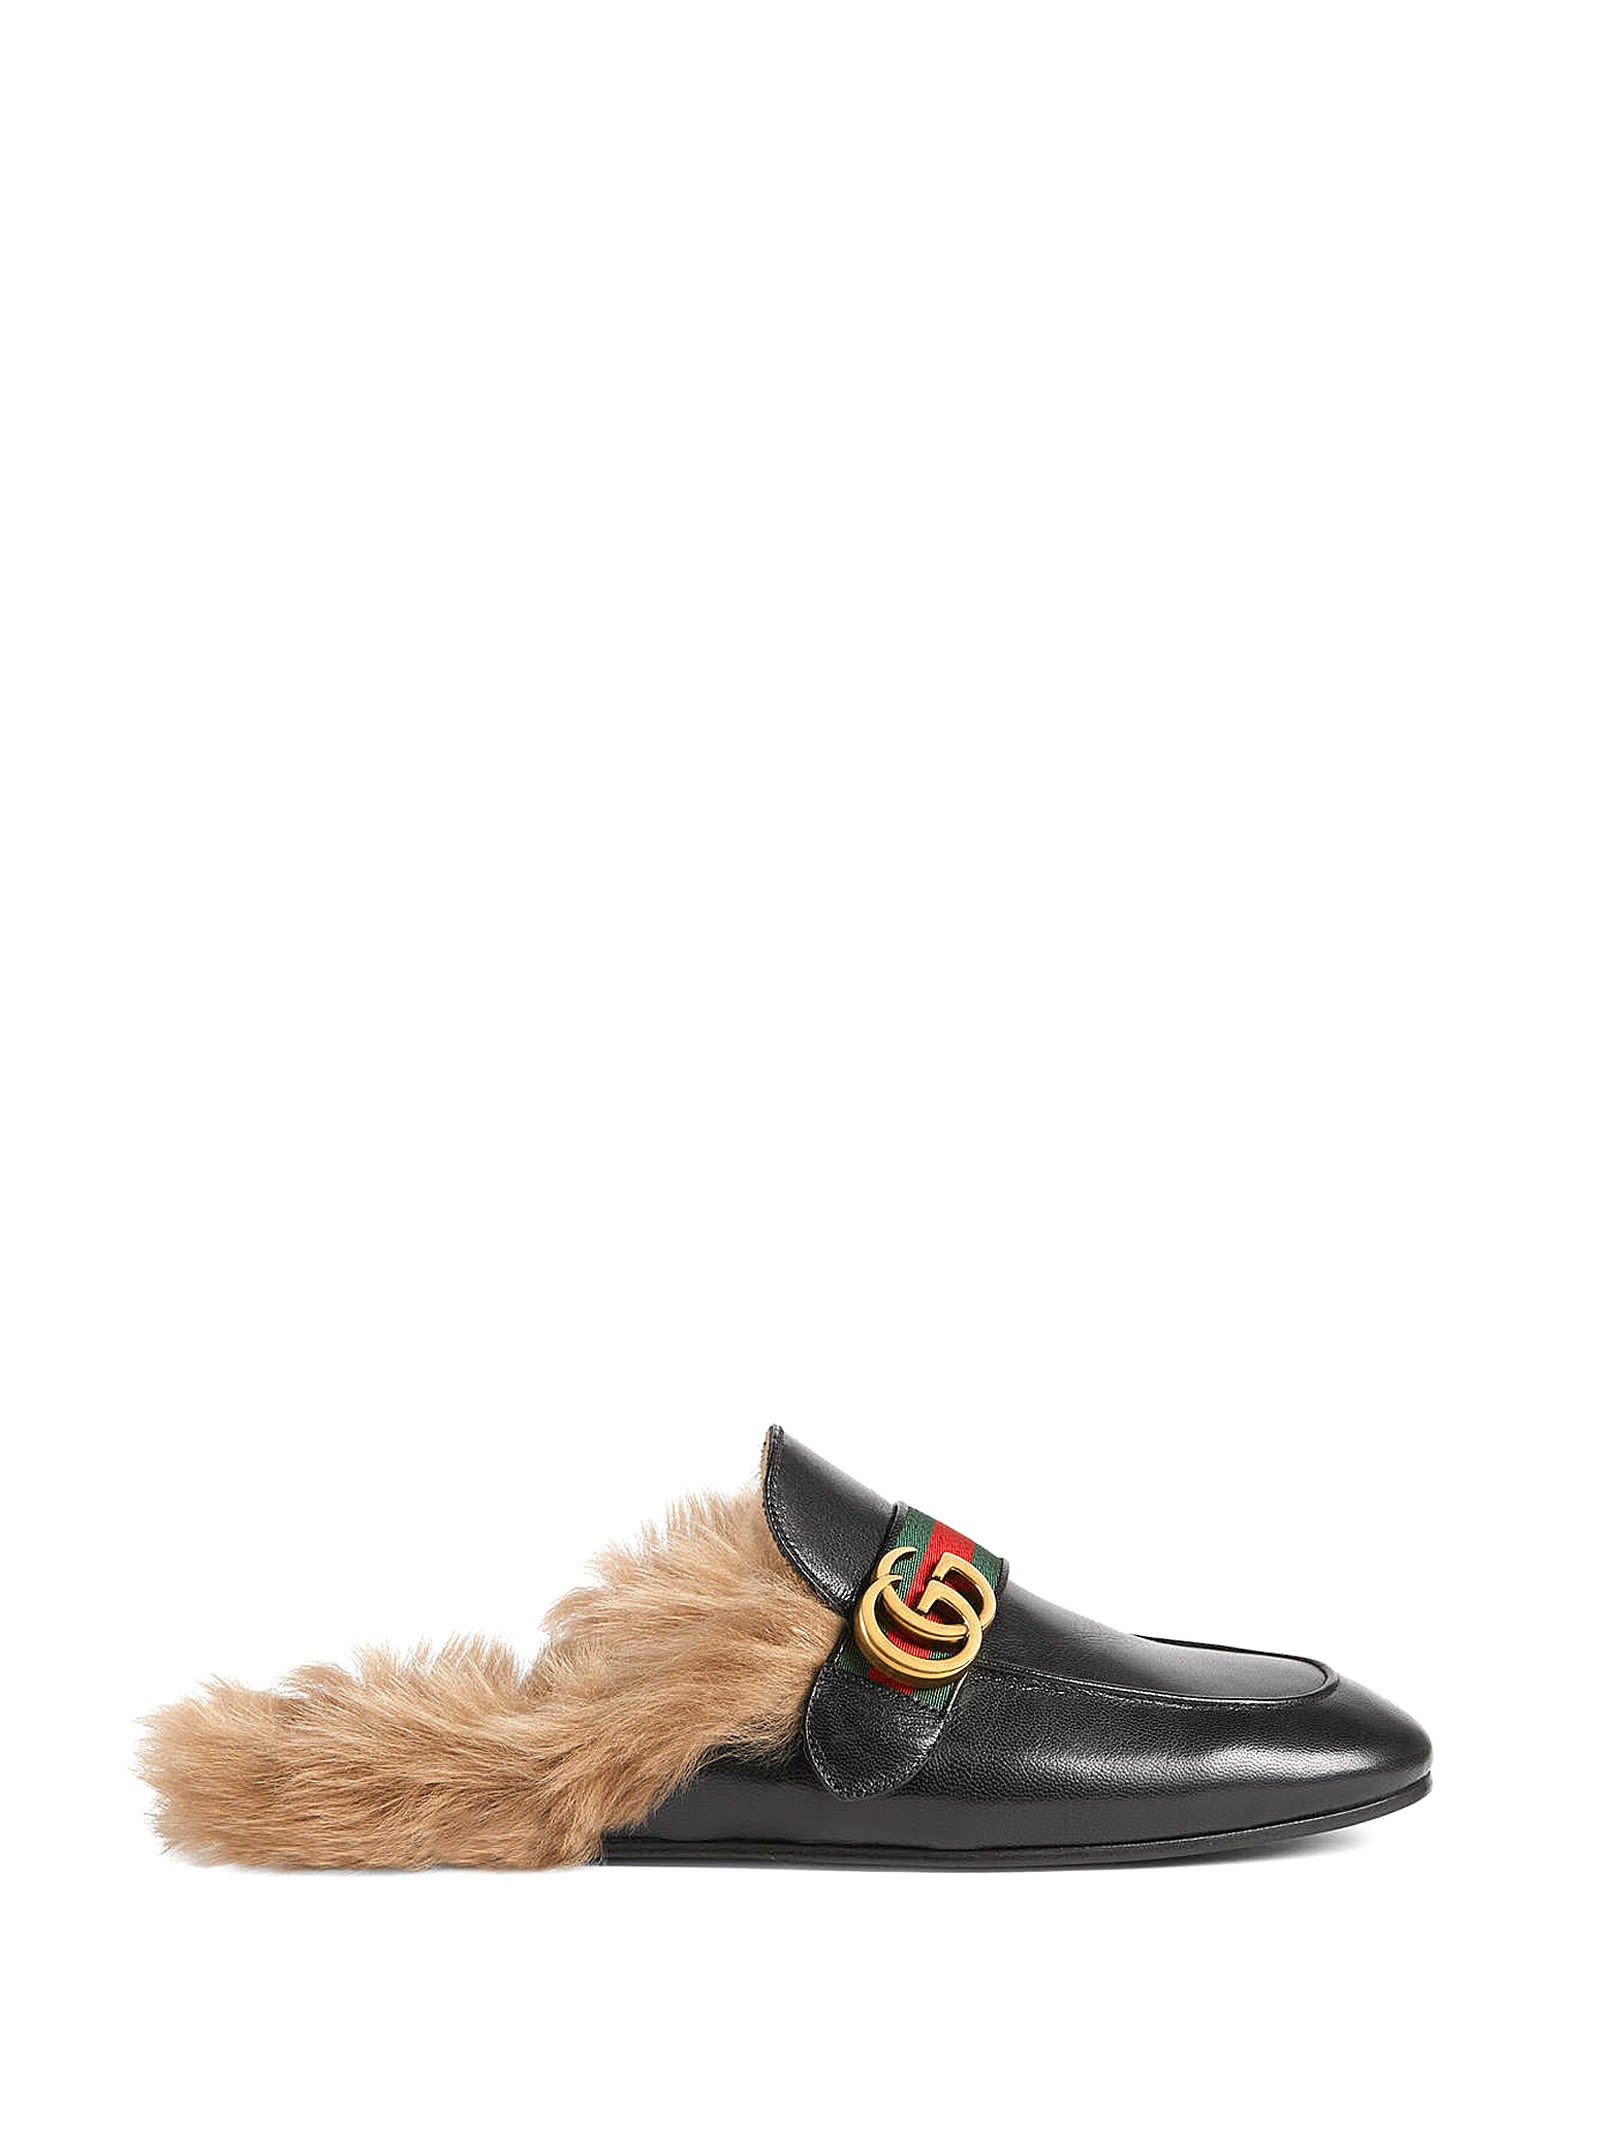 Gucci Leathers PRINCETOWN BLACK LEATHER SLIPPER